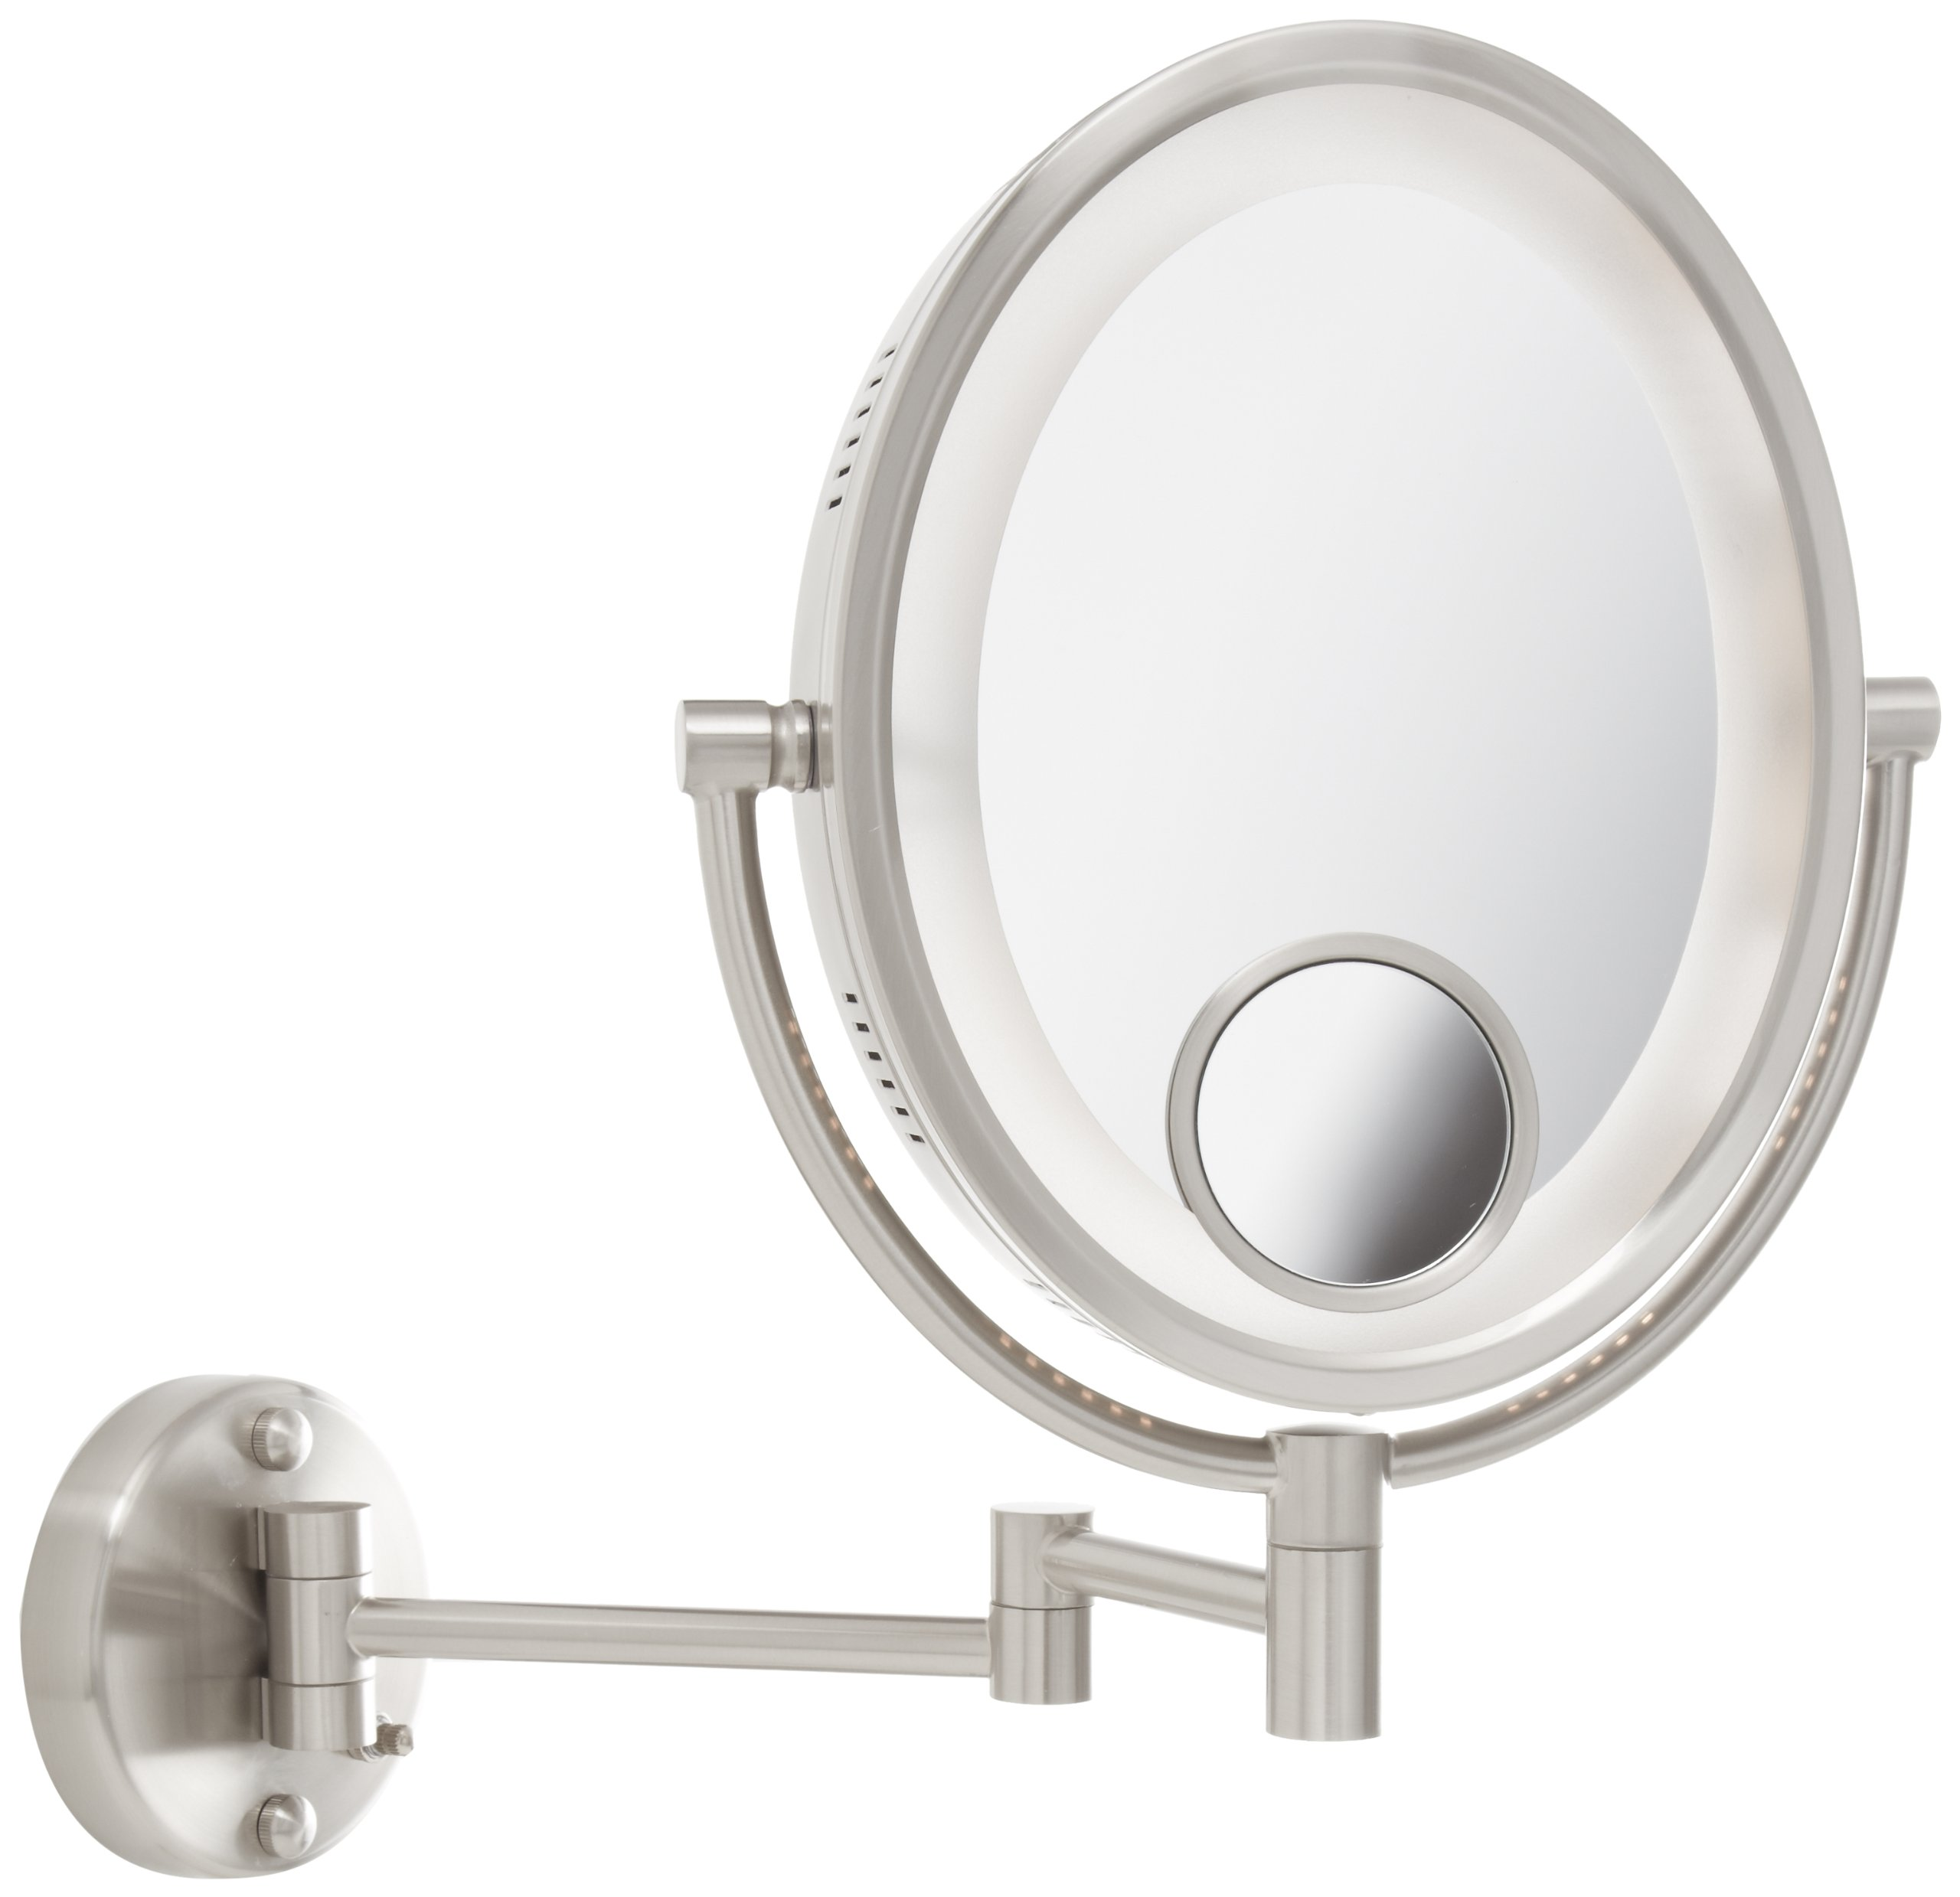 Jerdon HL9515N 8-Inch Lighted Wall Mount Oval Makeup Mirror with 10x and 15x Magnification, Nickel Finish